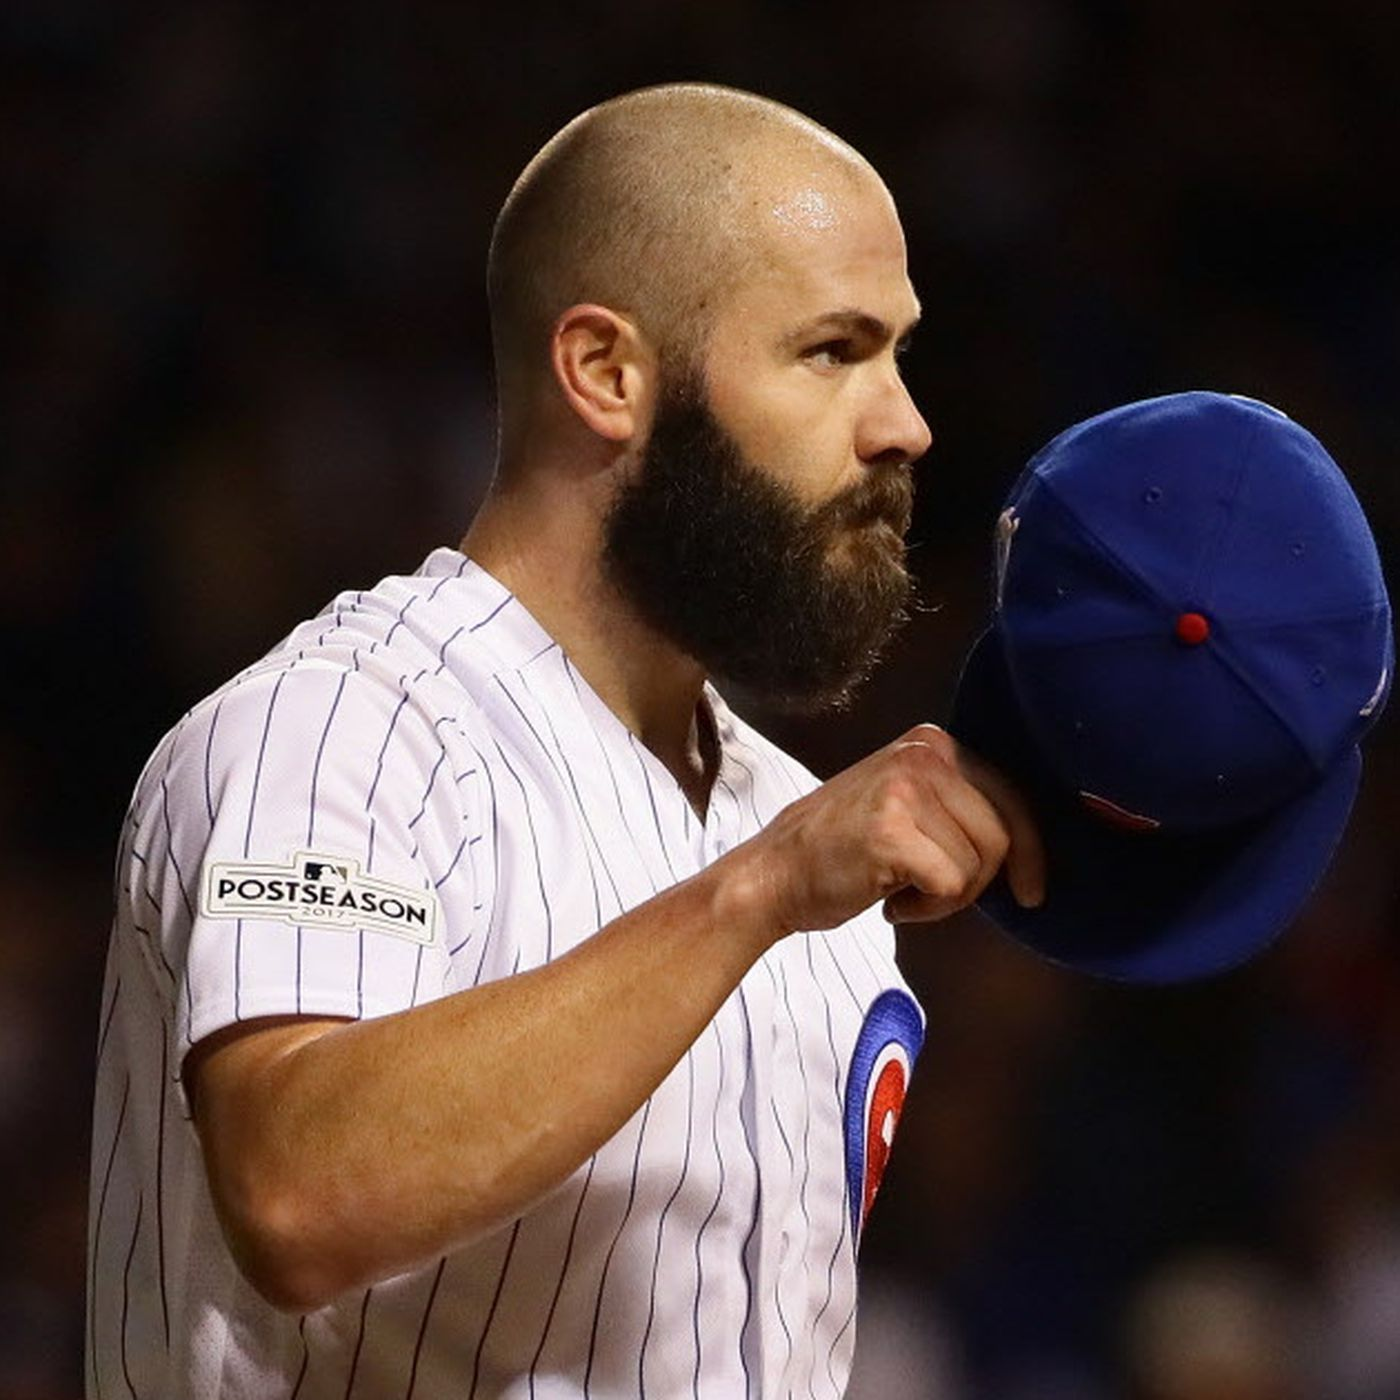 94f5400c8f5 About that Darvish obsession  Breathe — and give ex-Cub Arrieta proper  goodbye